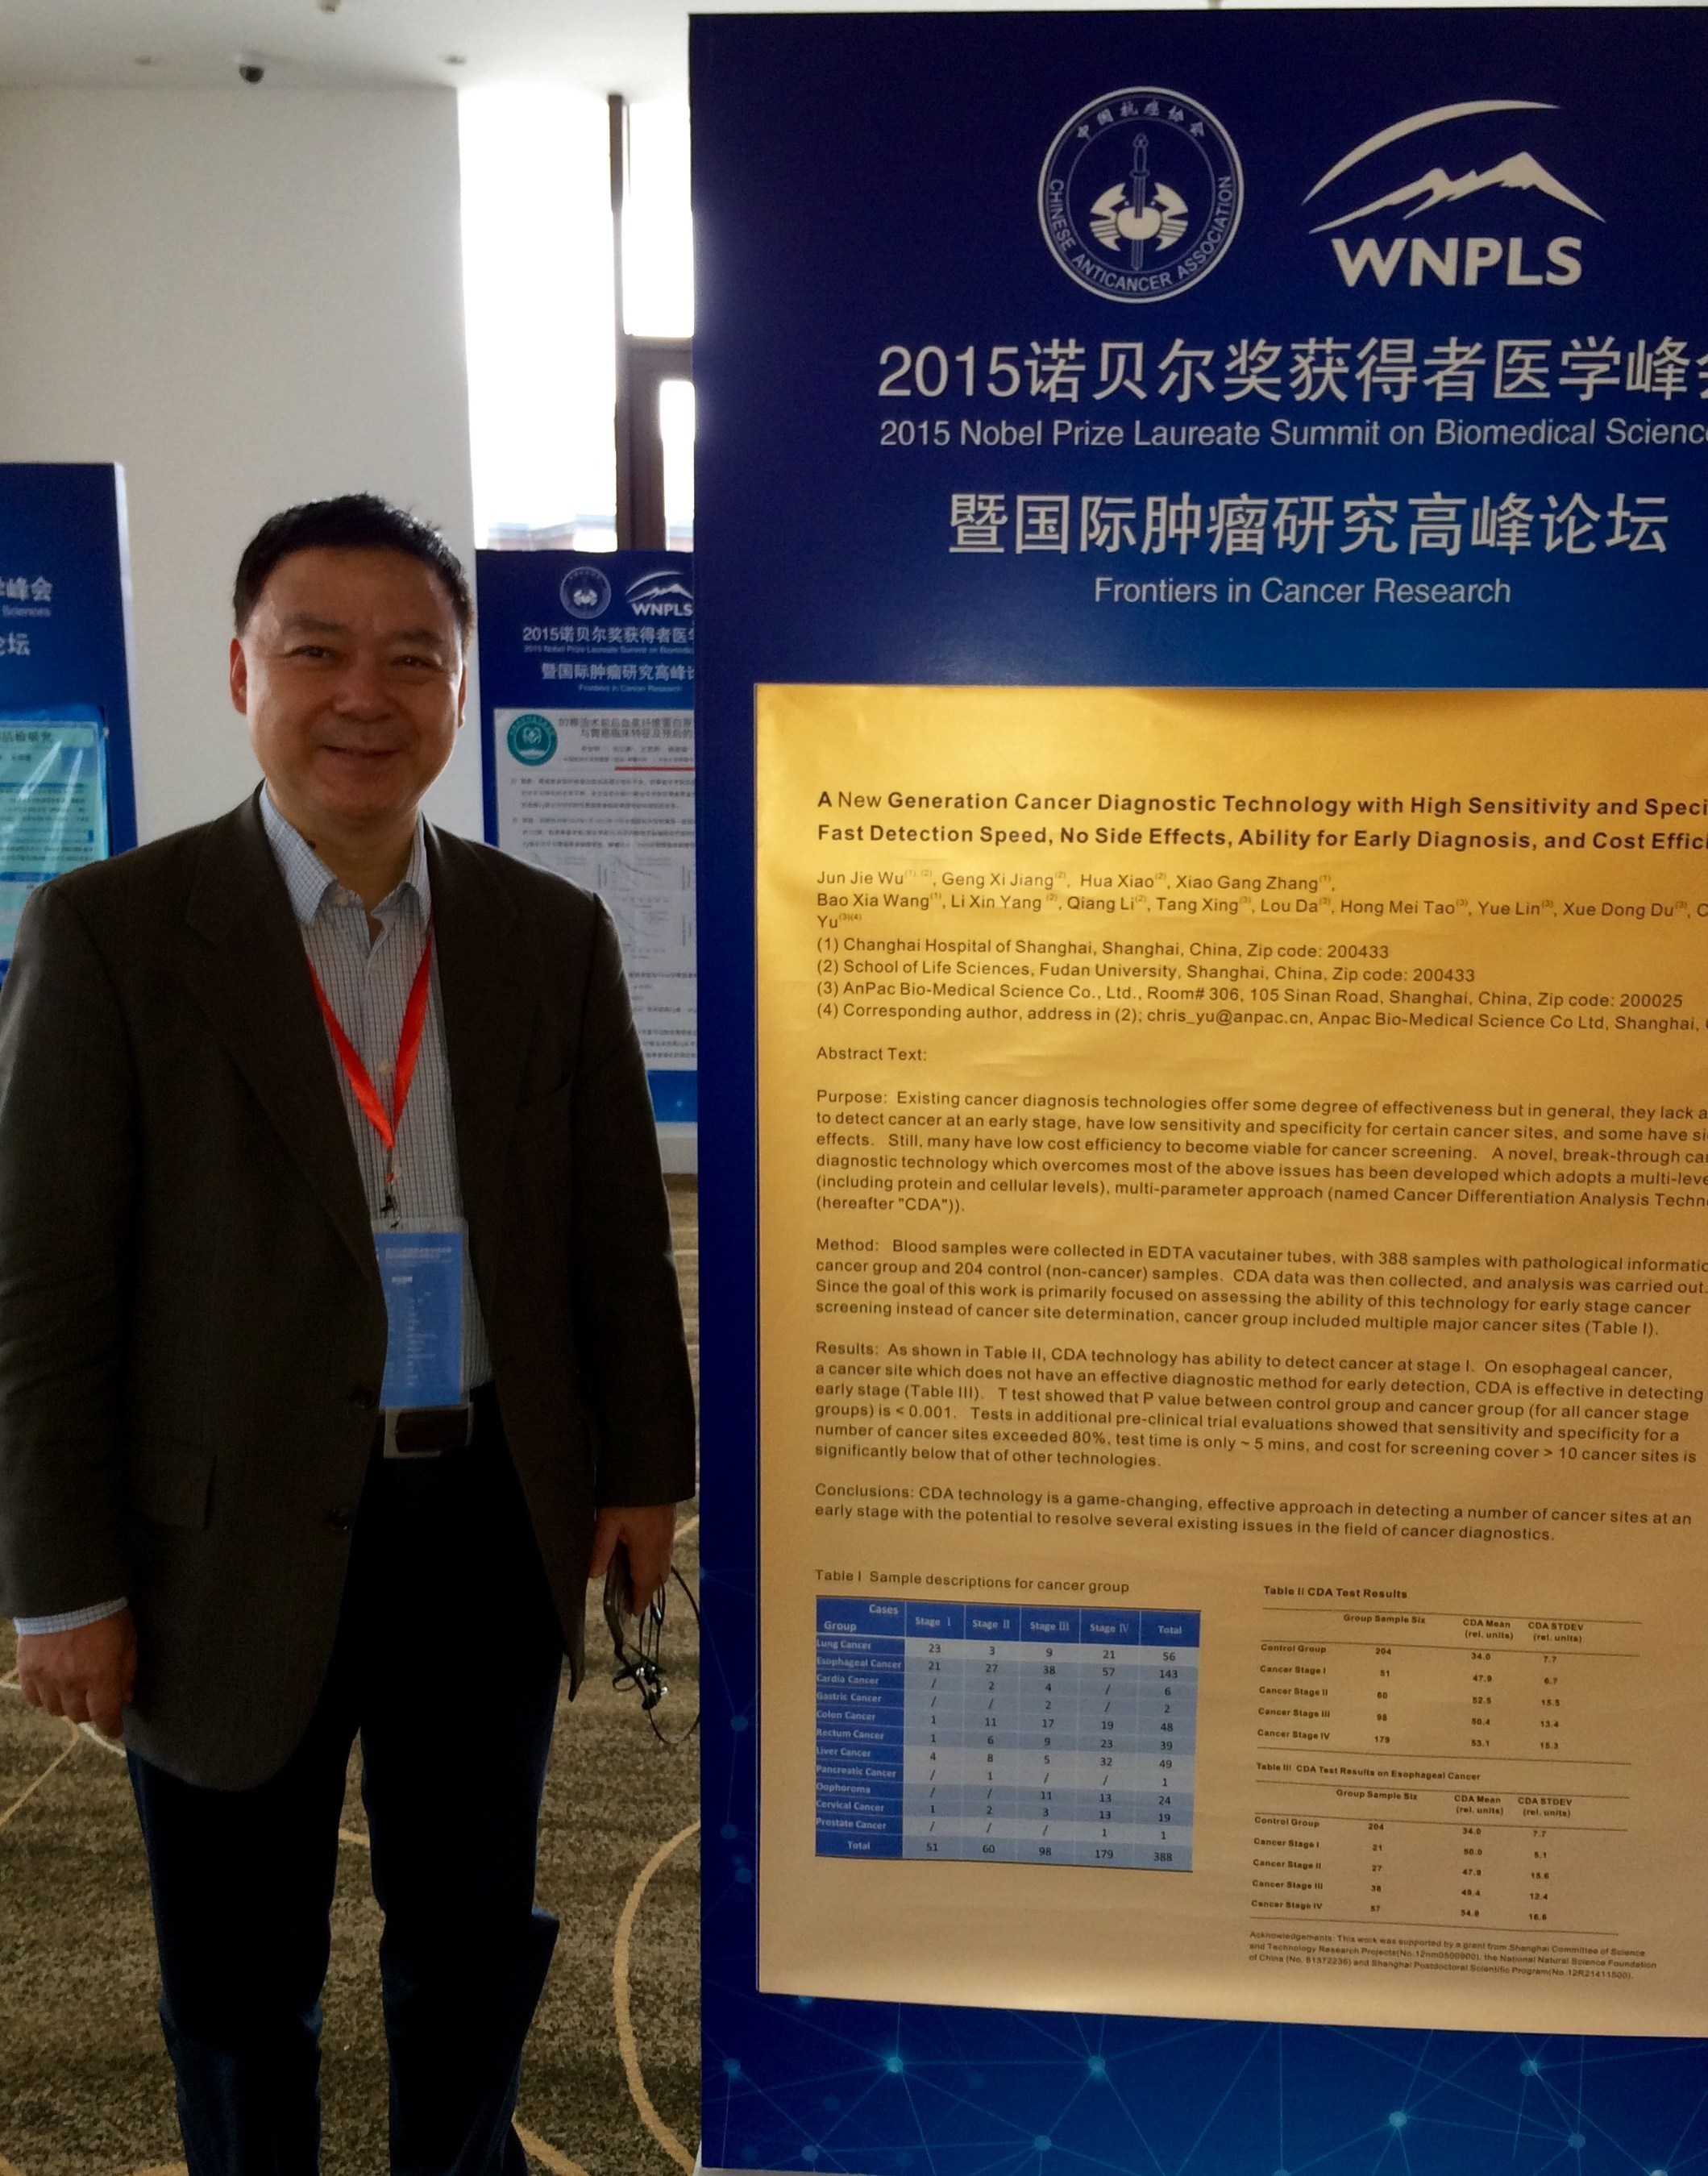 """At an unprecedented meeting of five Nobel Prize Laureate winners and the 20 acknowledged top cancer researchers worldwide, the """"2015 Nobel Prize Laureate Summit on Biomedical Science: Frontiers in Cancer Research,"""" (NPLS) in Tianjin, China, featured what organizers listed as """"game changing"""" research presented by Dr. Chris Yu, CEO of Anpac Bio-Medical Company (pictured here before am Anpac CDA display). Anpac's """"Cancer Differentiation Analysis"""" (CDA) technology creates non-invasive, """"Blood Biopsies"""" ..."""